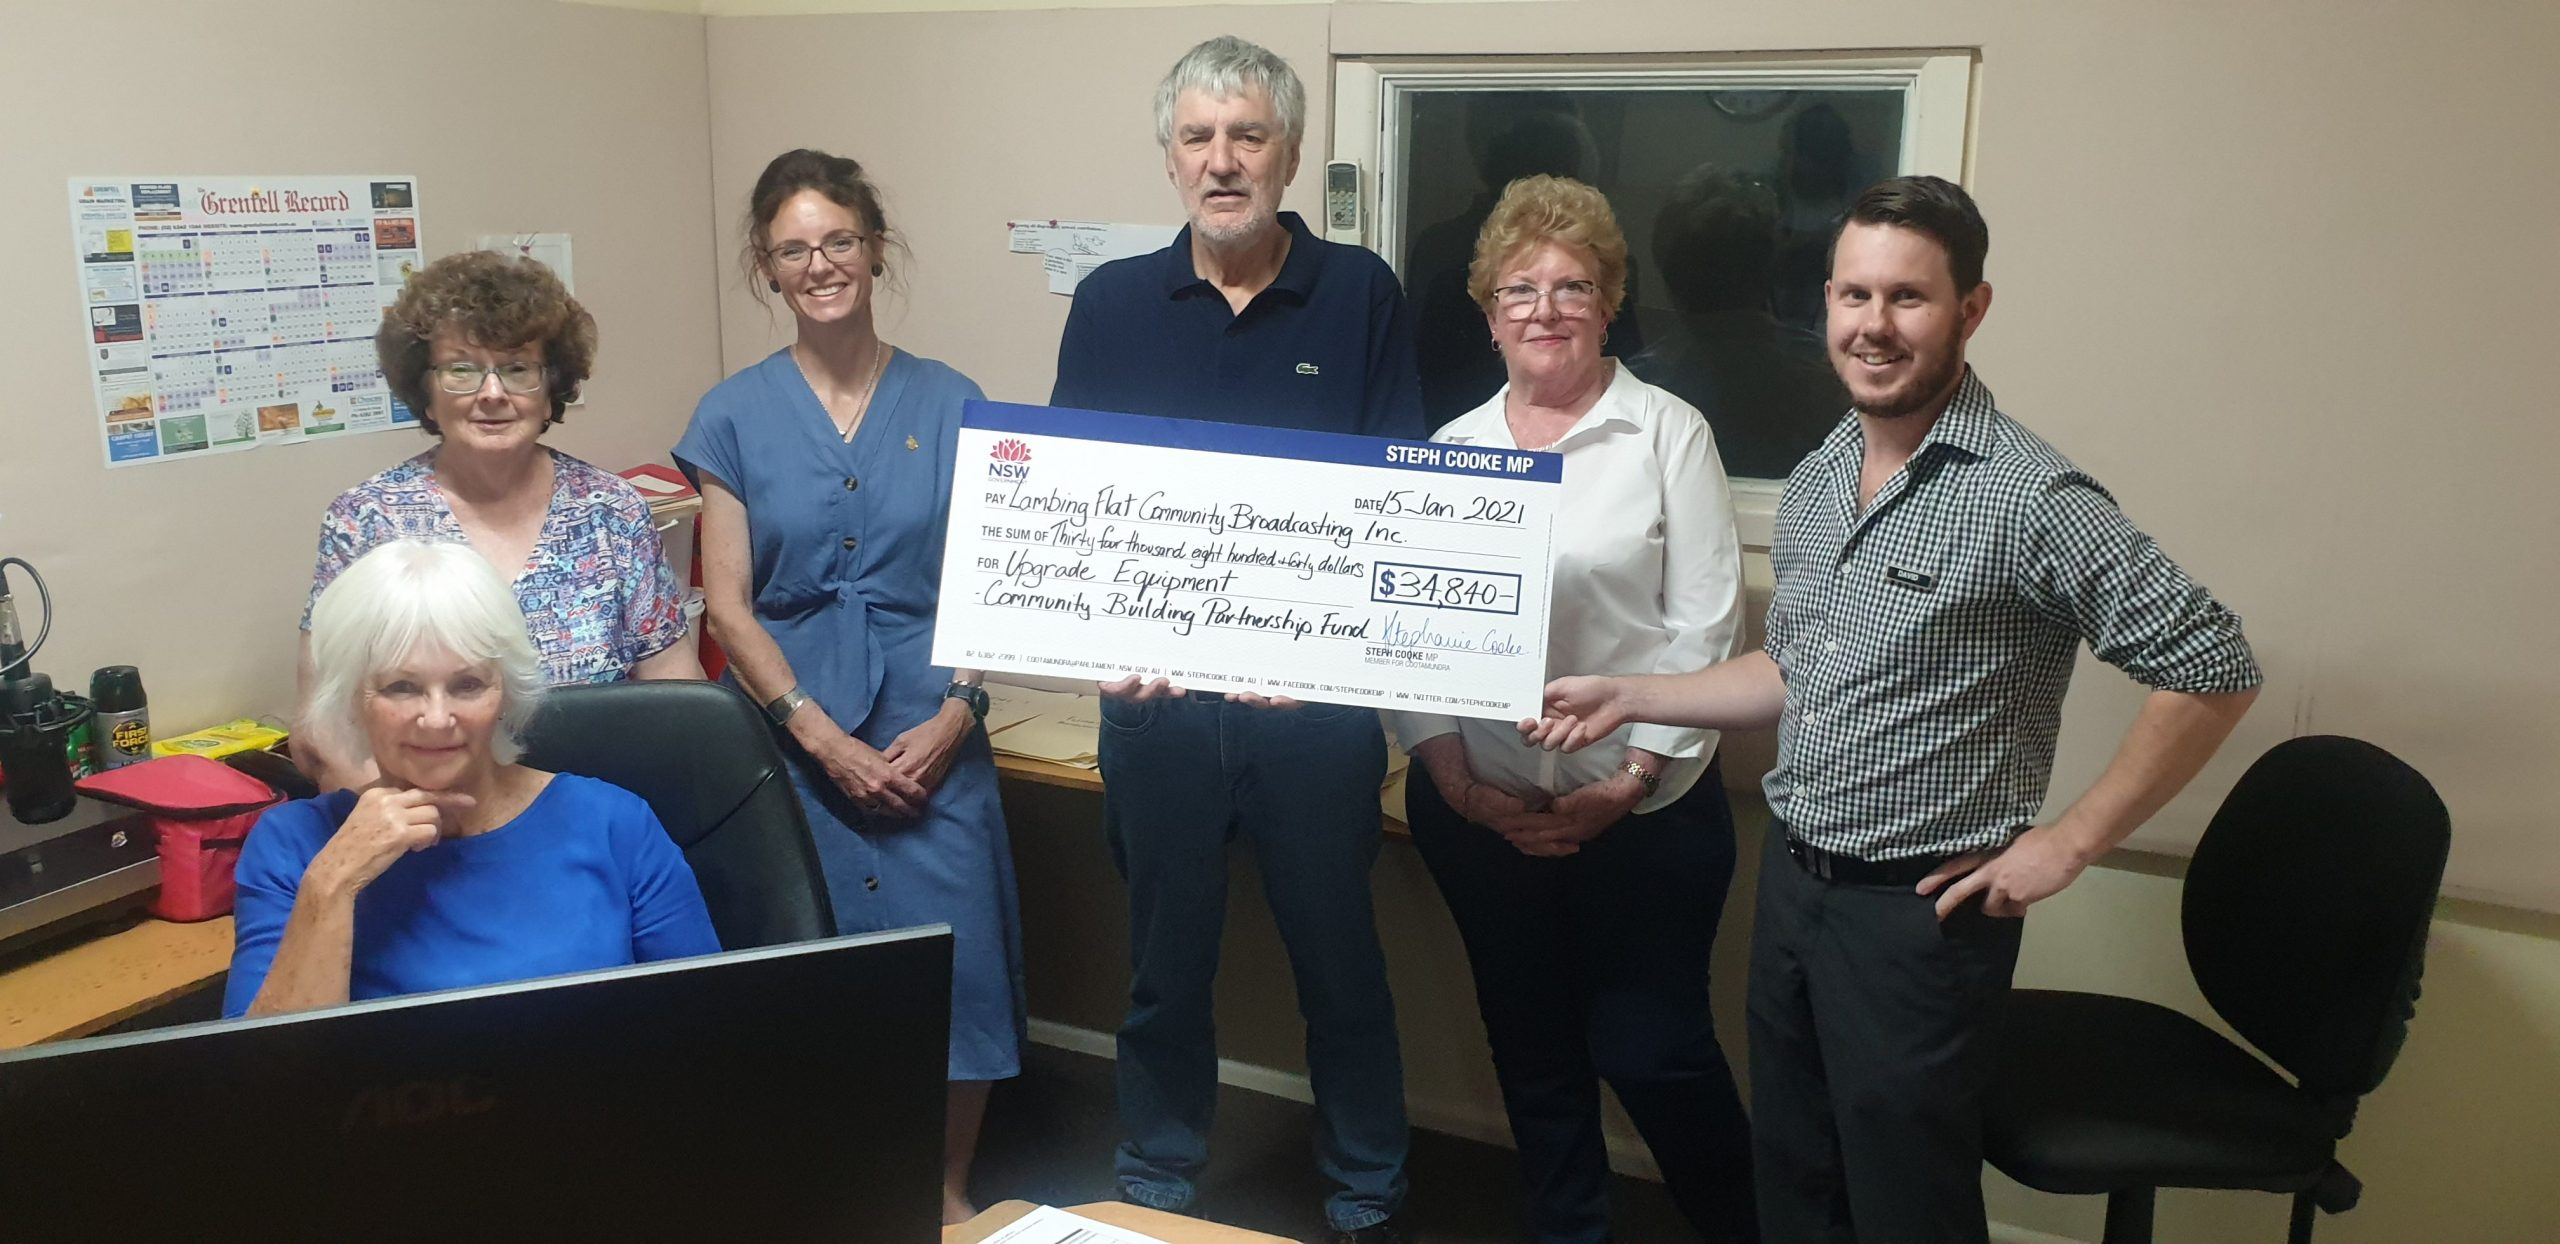 Steph Cooke with Young Community Radio volunteers Maureen Perkins, Betty Smithers, Tony Gentle, Bonnie Dudman and David Munnerly. They hold a large cheque in a small office.